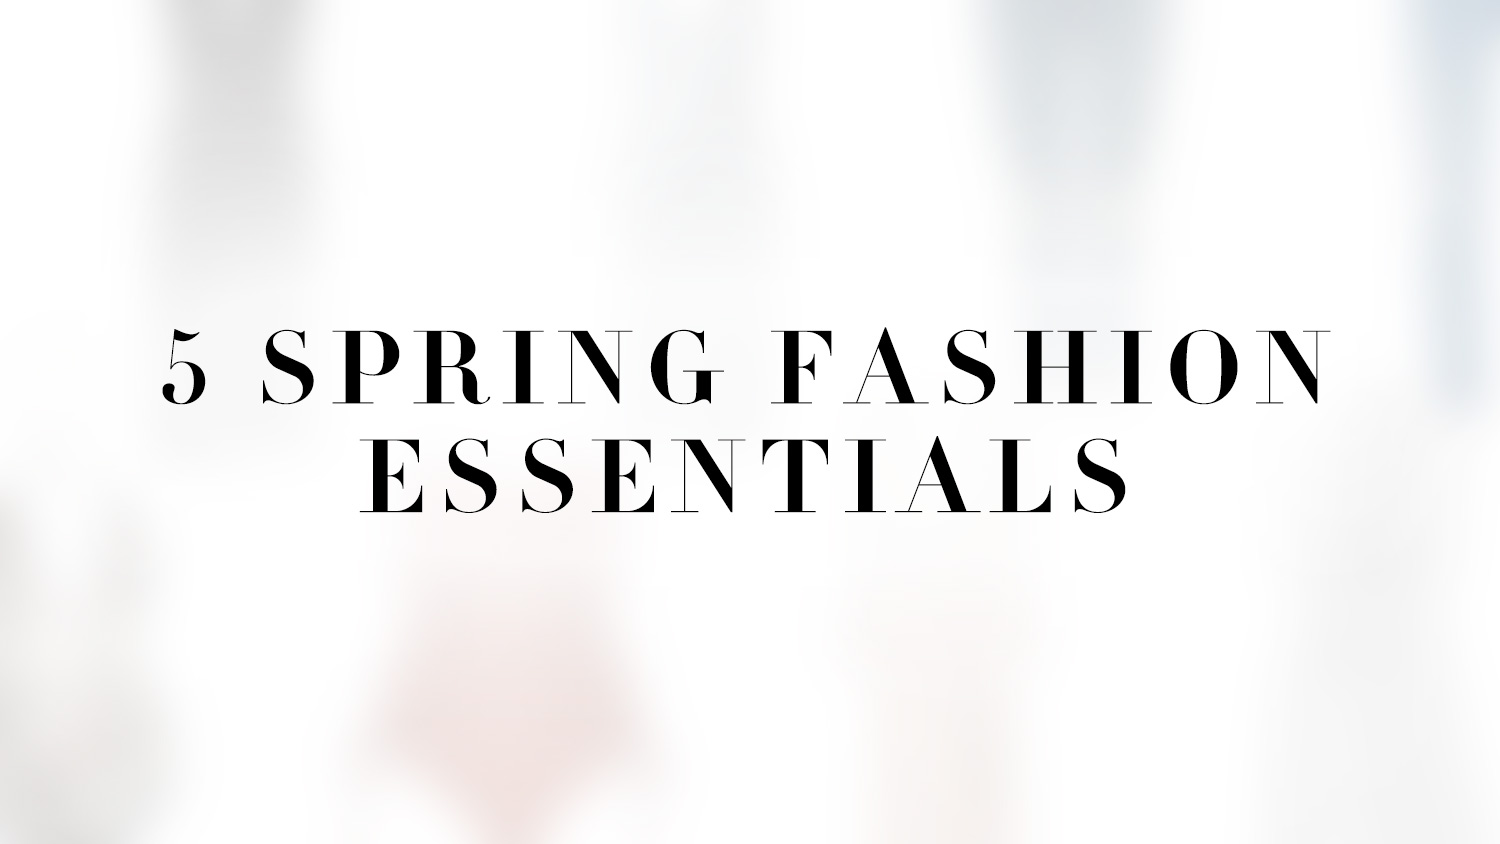 5 Spring Fashion Essentials